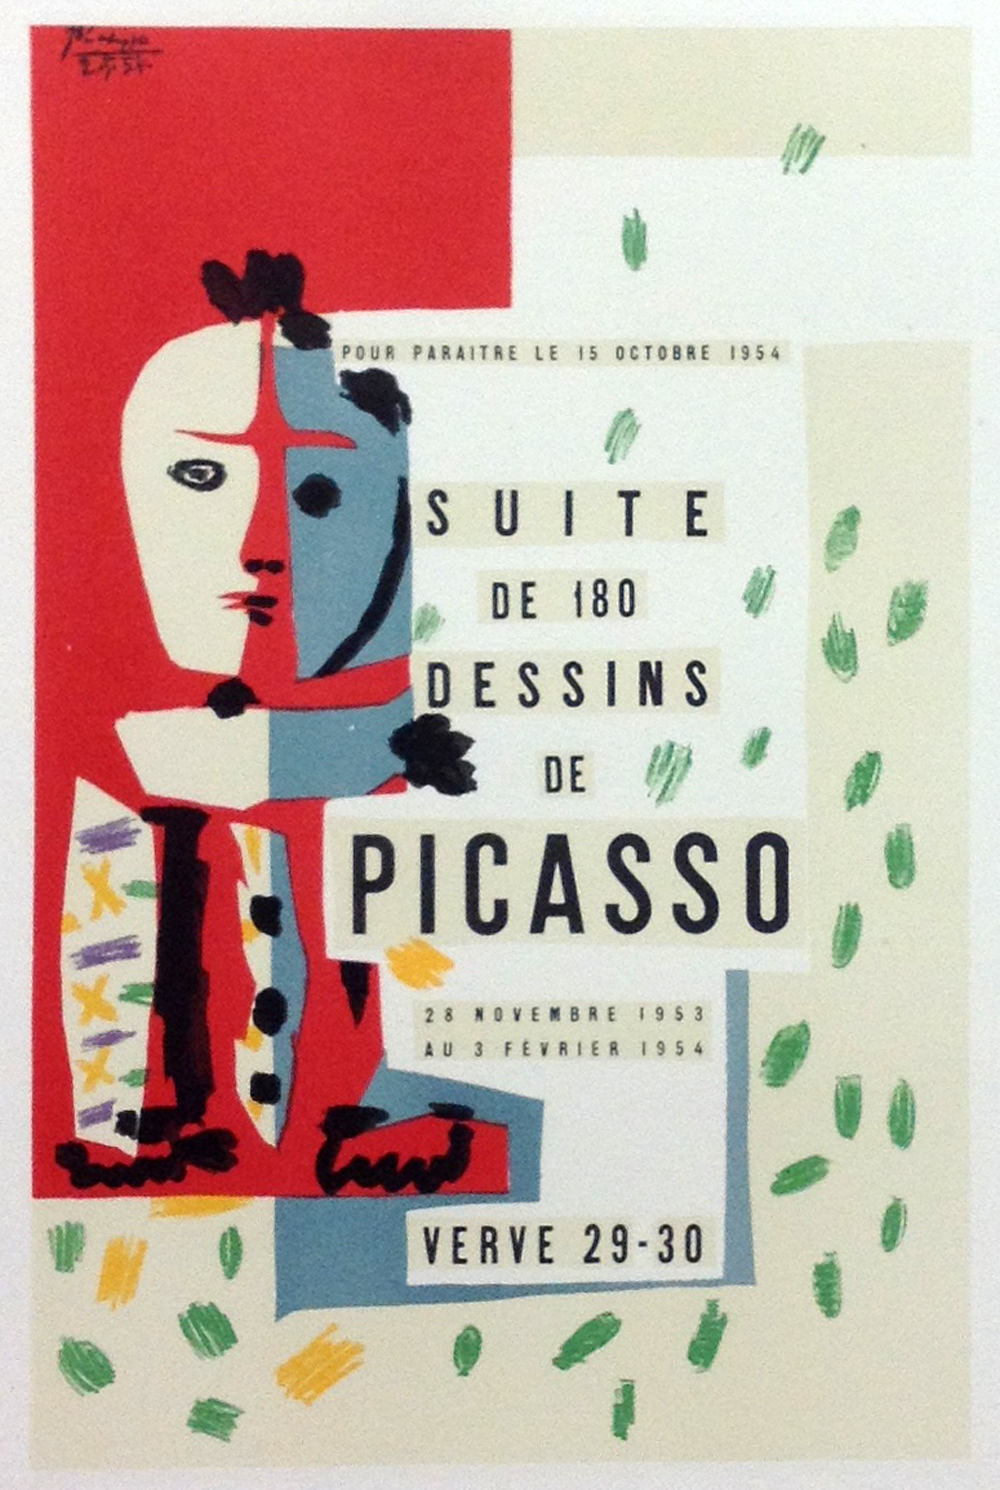 Picasso 72 Lithograph 180 dessins-1959 Mourlot Art in posters